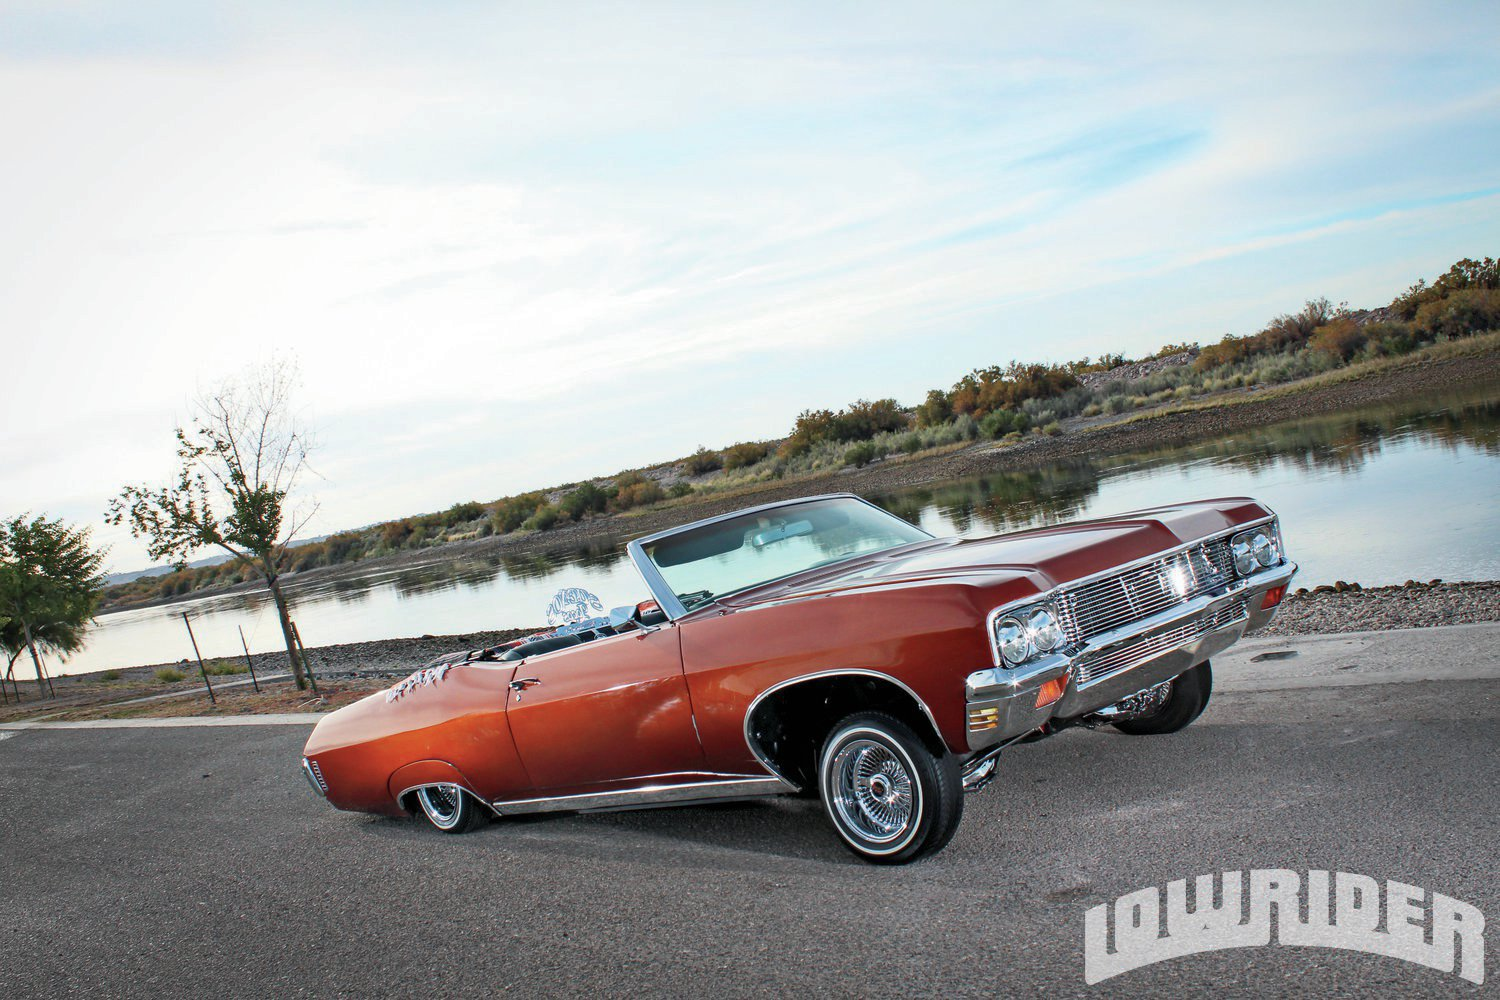 1970 Chevrolet Impala Convertible - The Mohave '70 ...